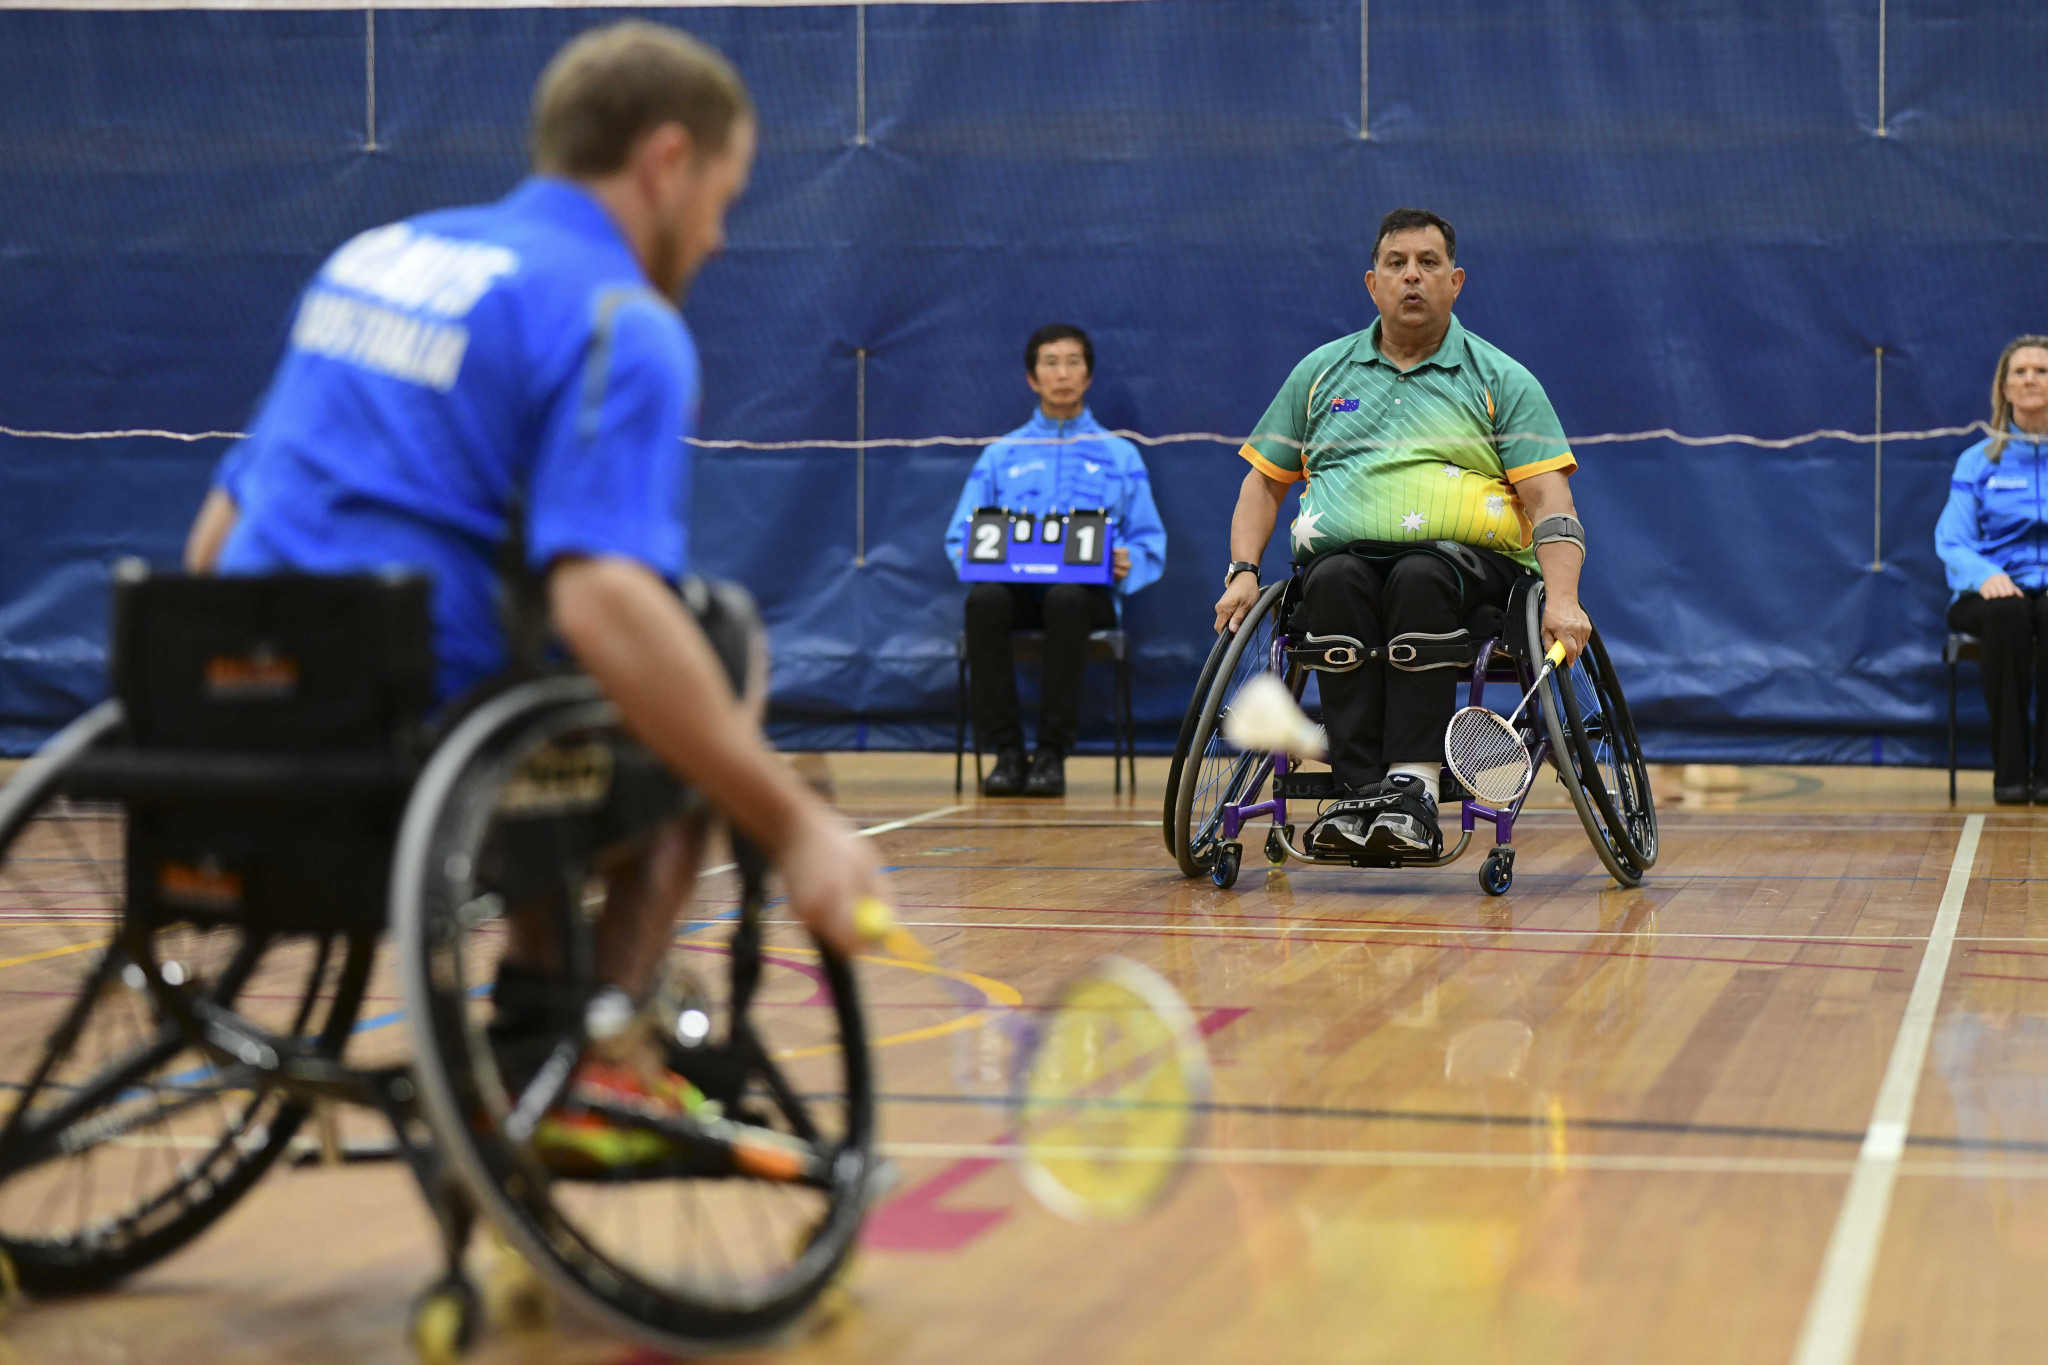 Australia top in all categories after day one of Oceania Para-Badminton Championships